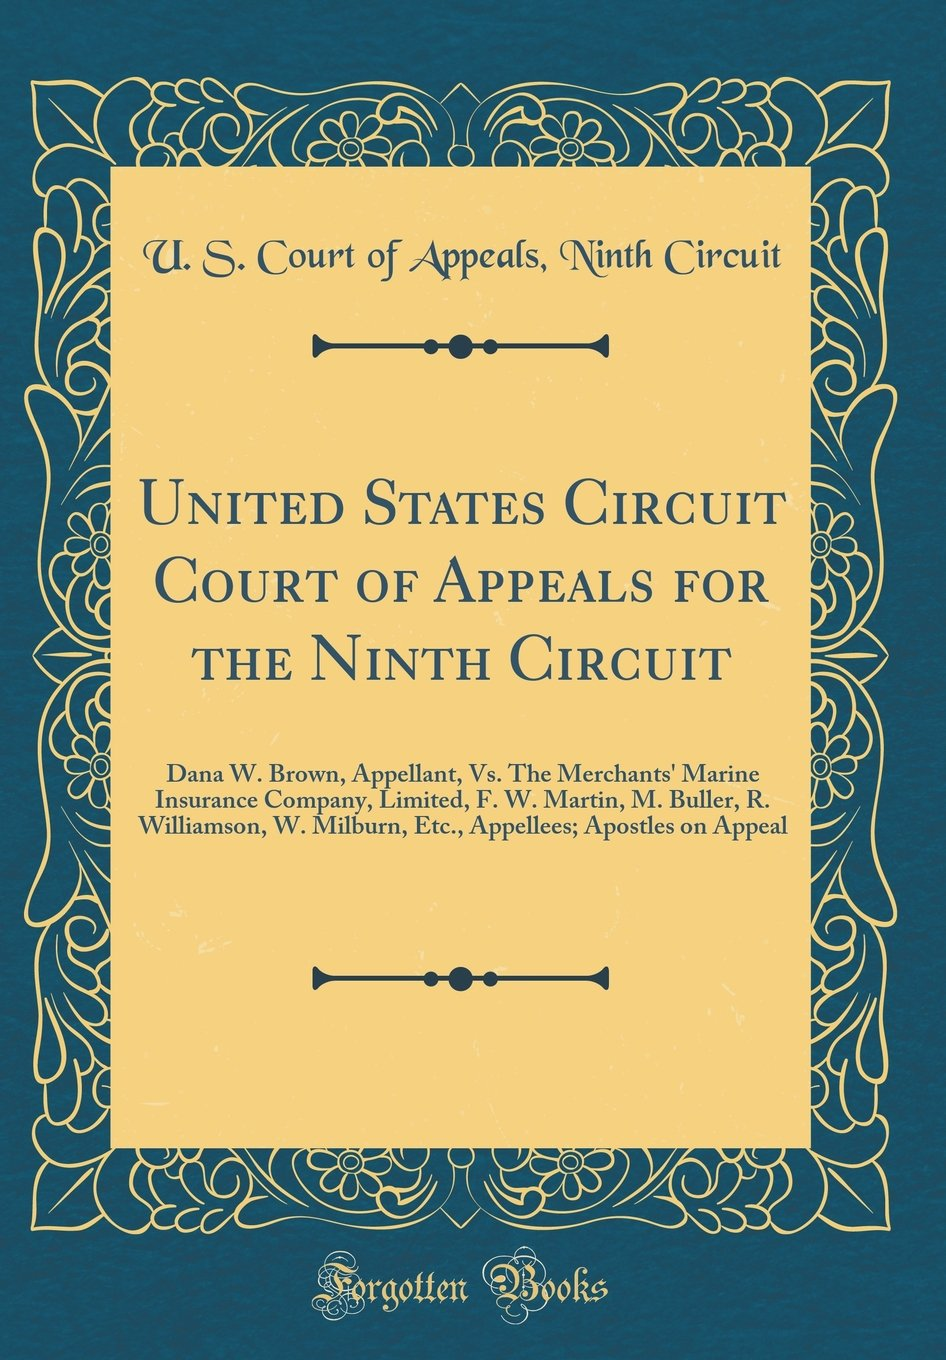 Download United States Circuit Court of Appeals for the Ninth Circuit: Dana W. Brown, Appellant, Vs. The Merchants' Marine Insurance Company, Limited, F. W. ... Apostles on Appeal (Classic Reprint) pdf